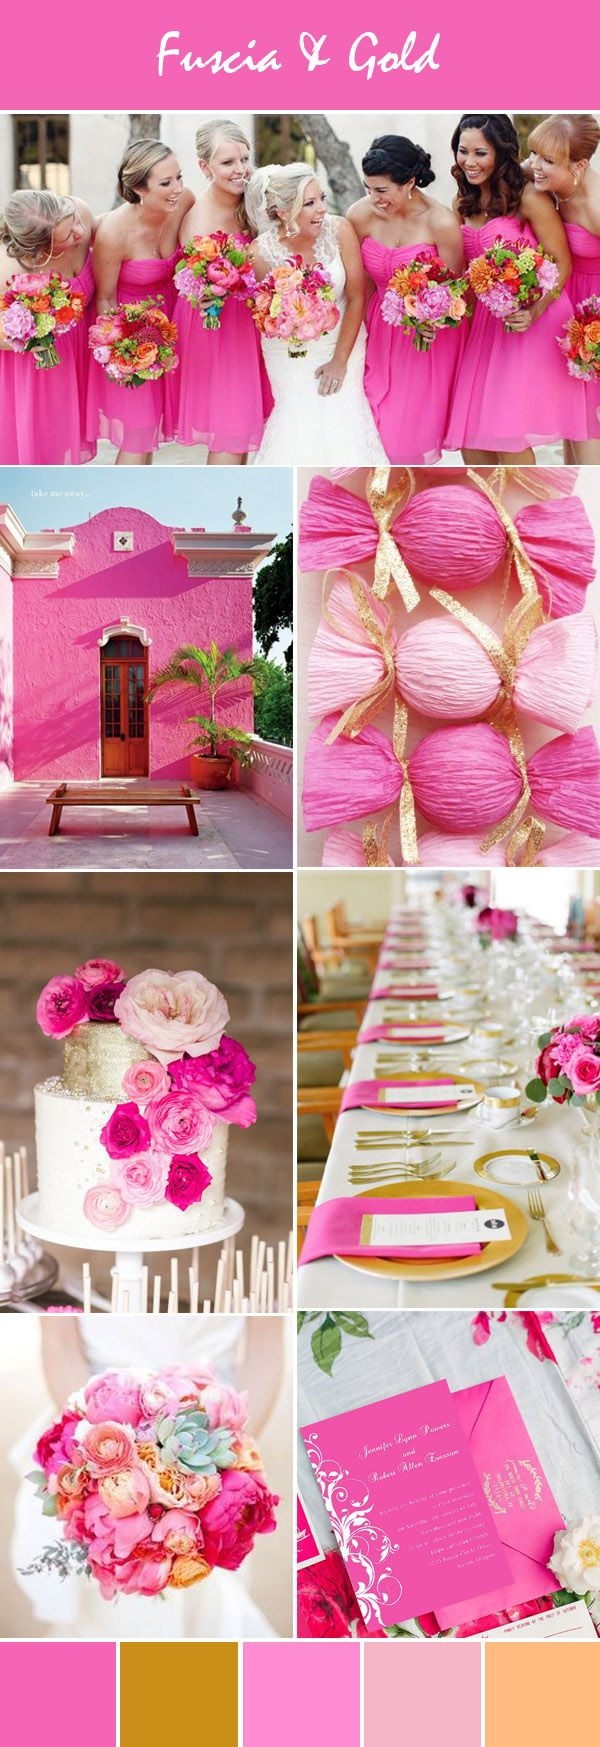 fuscia pink and gold wedding ideas and pink wedding invitations see more www.homeboutiquecraft.com